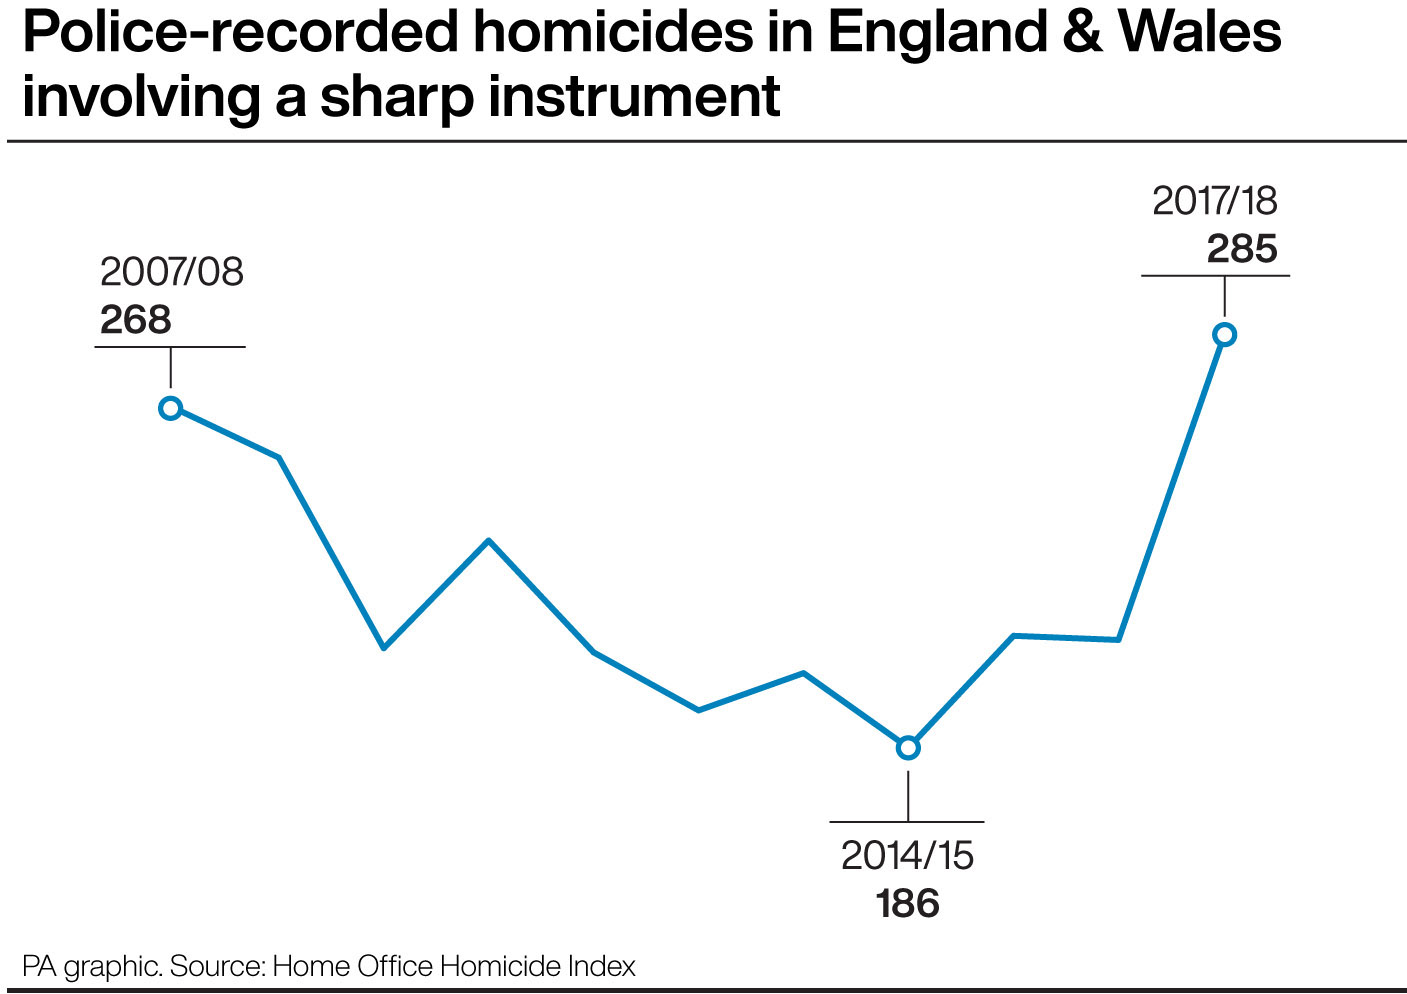 Police-recorded homicides in England and Wales involving a sharp instrument